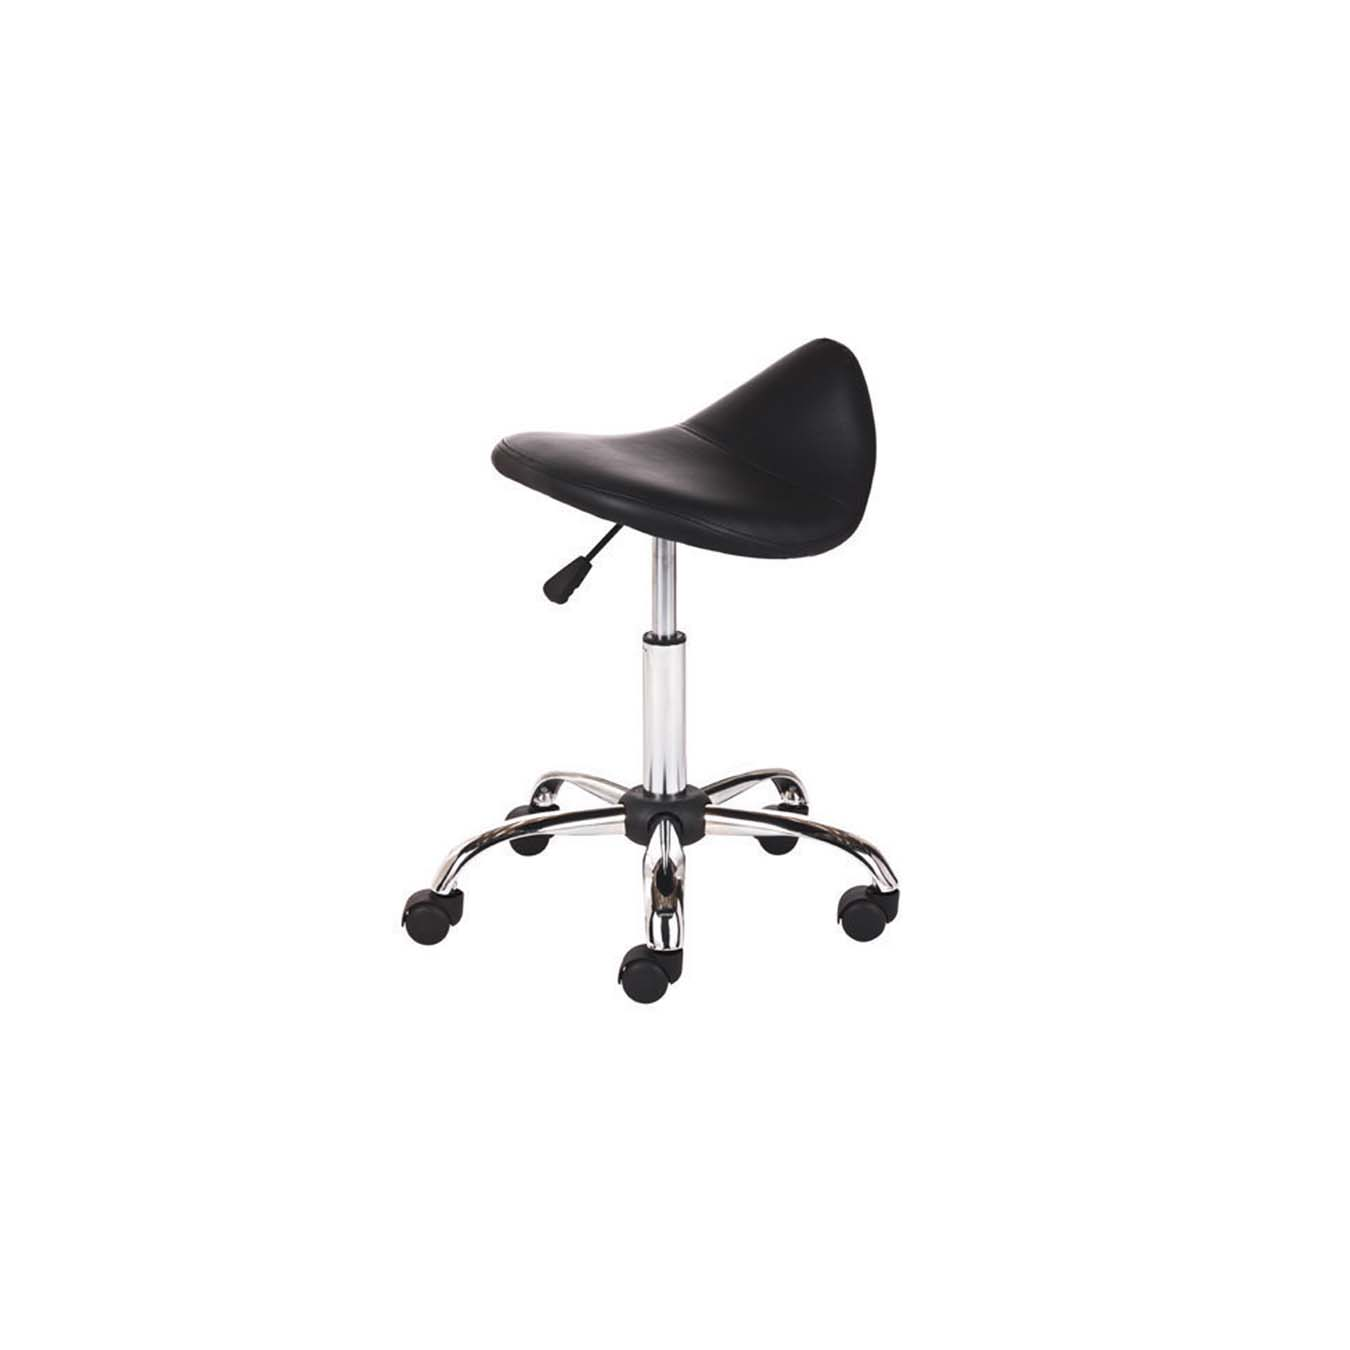 AX2710_1_Saddle-Stool-Hand-Operated_1